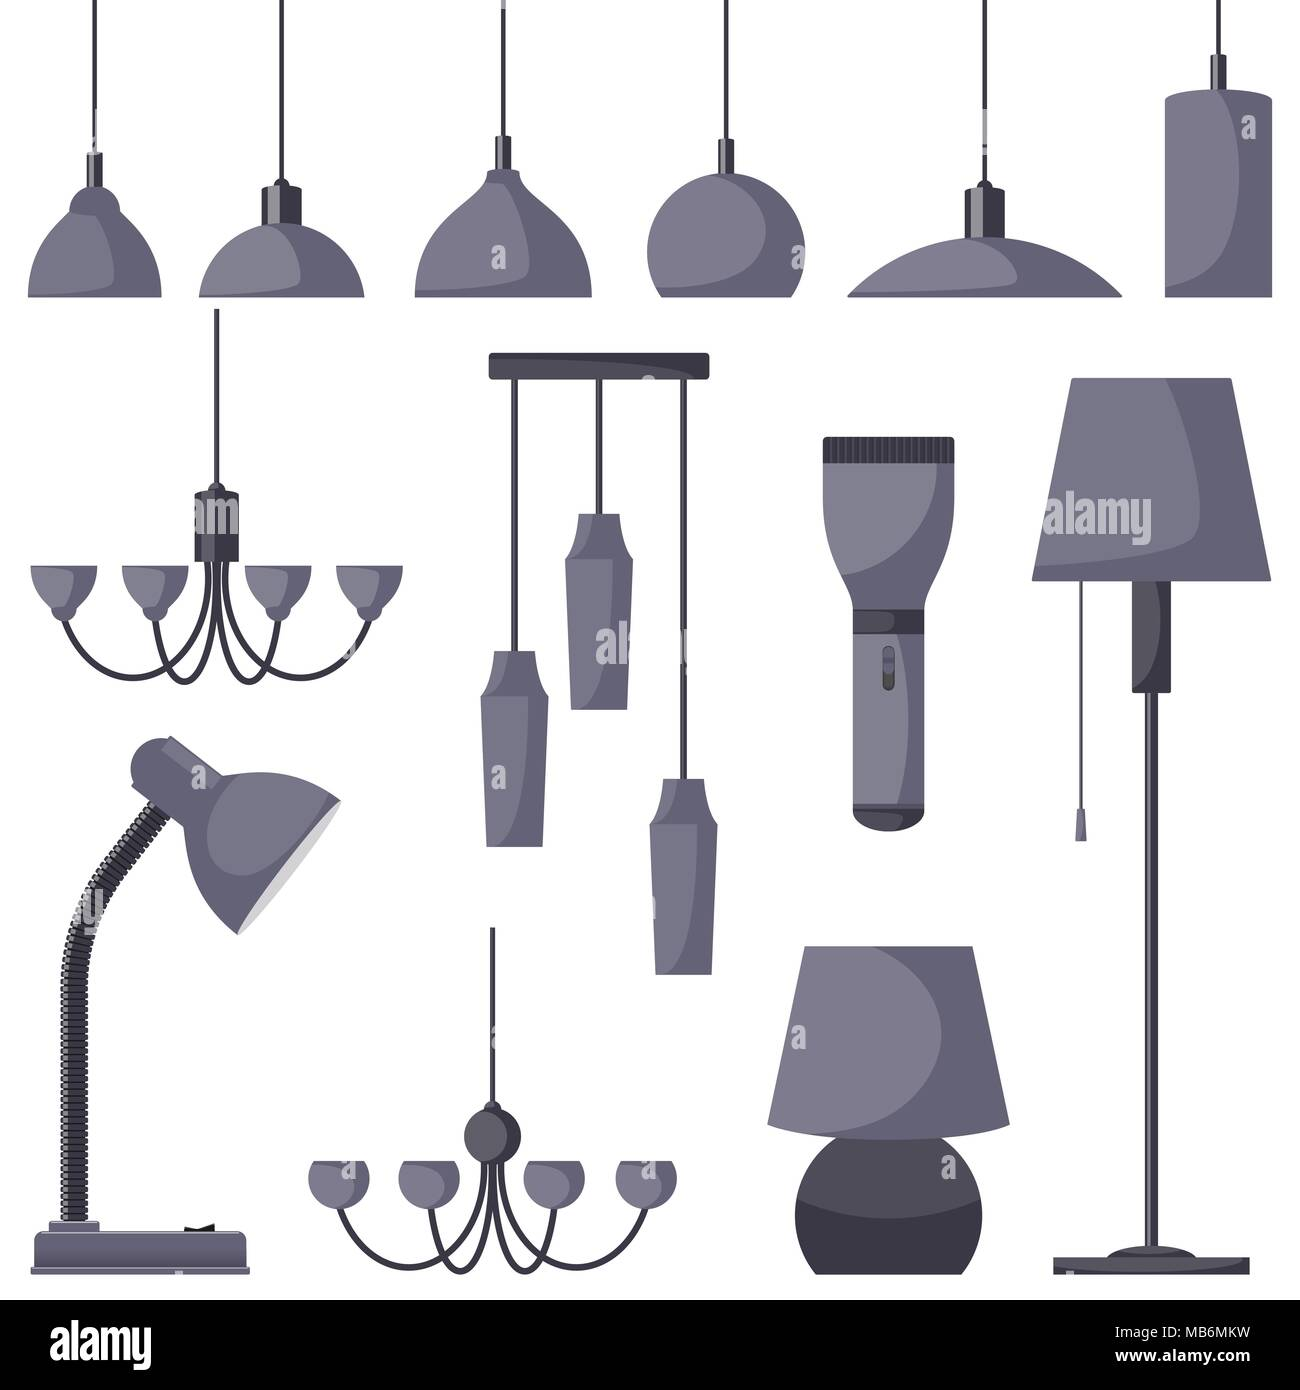 Lamps of different types set chandeliers lamps bulbs table lamp lamps of different types set chandeliers lamps bulbs table lamp flashlight floor lamp elements of modern interior vector illustration in fla arubaitofo Image collections